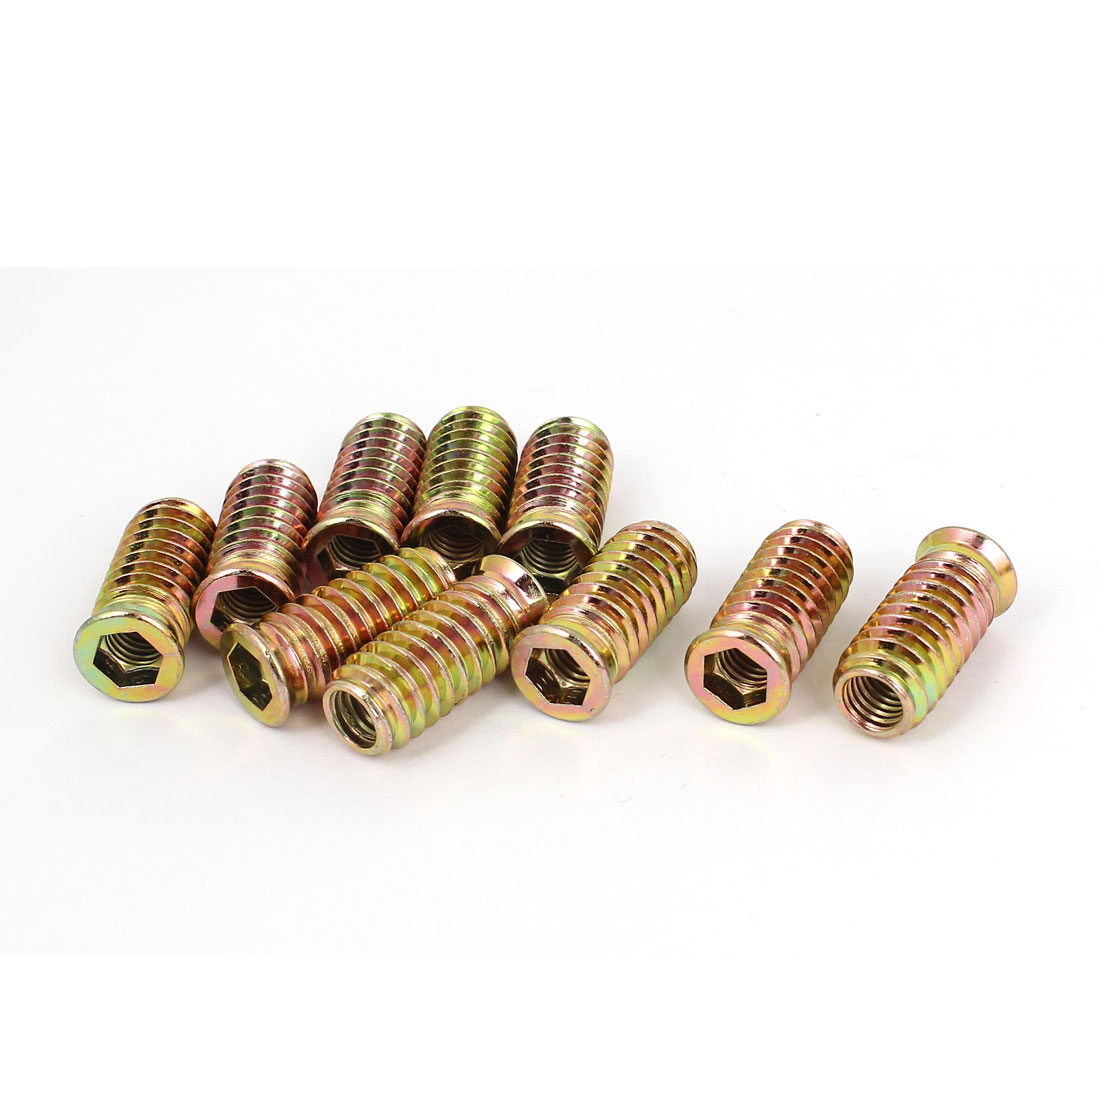 Furniture 8mmx30mm E-Nut Wood Insert Interface Screws Hex Socket Nuts 10 Pcs